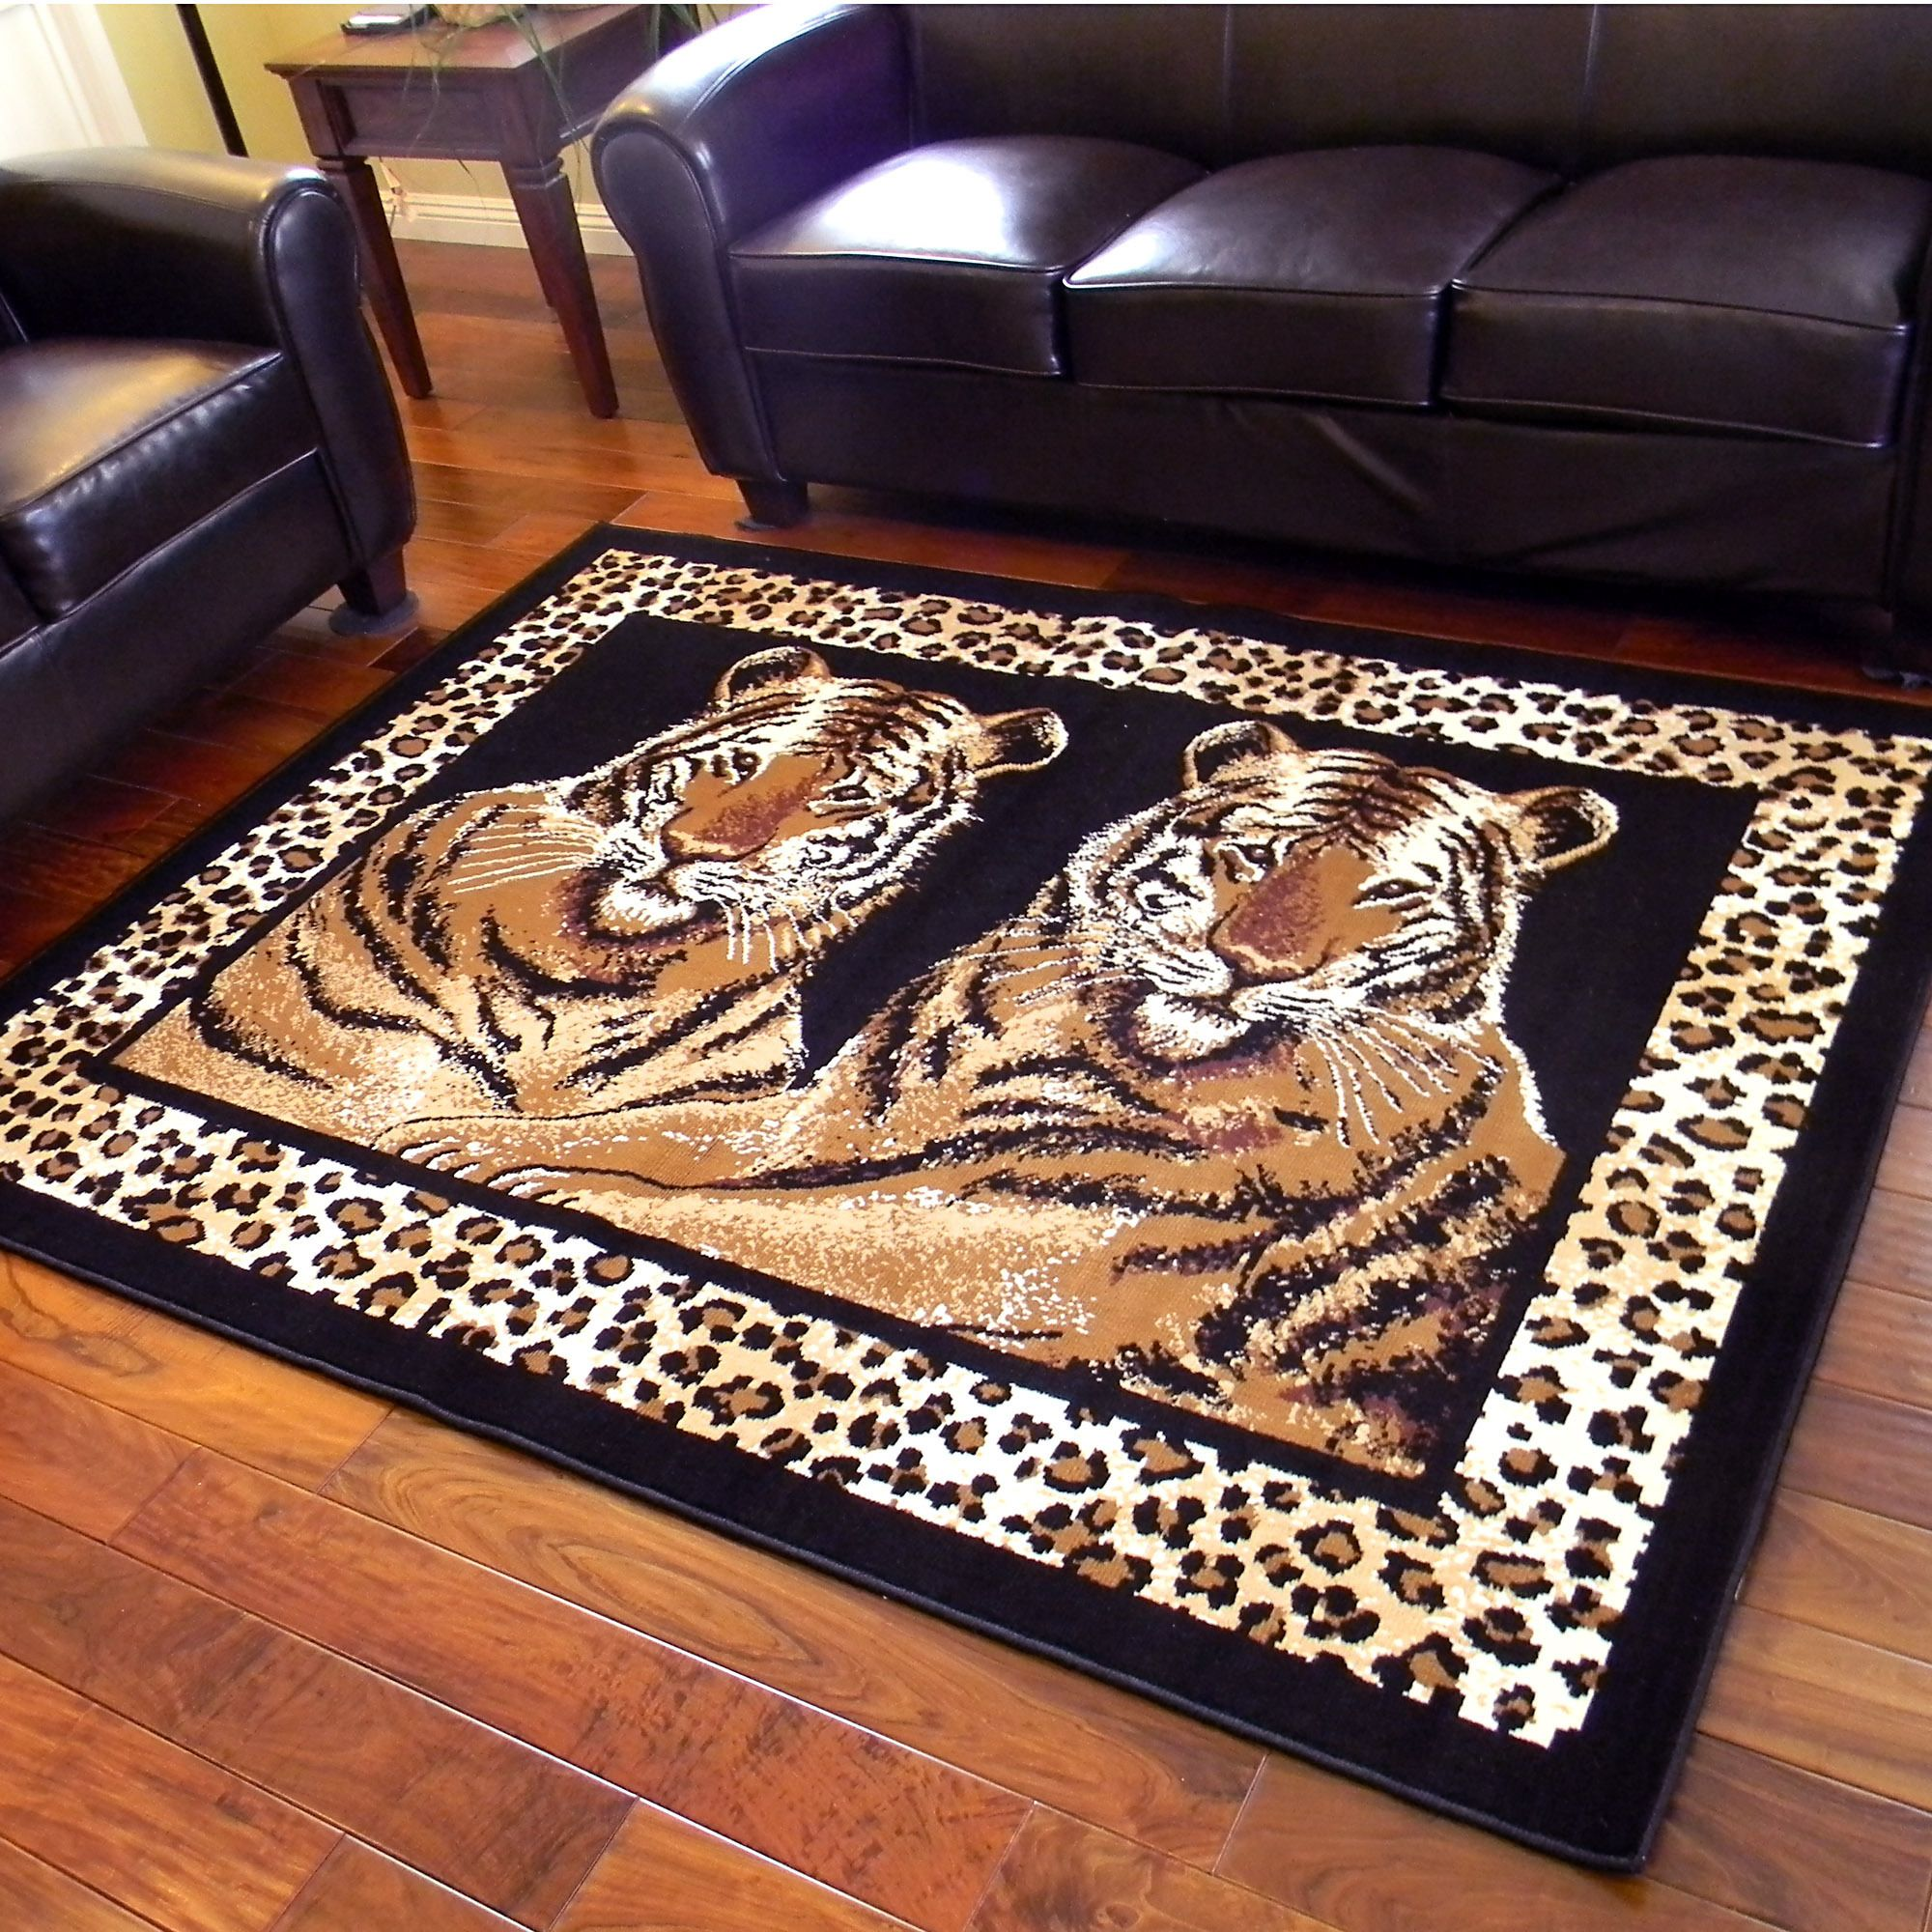 Escape to any African safari with this very beautiful 'twin tigers sitting' theme with a leopard print bordered design. A soft-touch color fast yarn double weft incorporated system make this a rich and durable rug that will last for years.